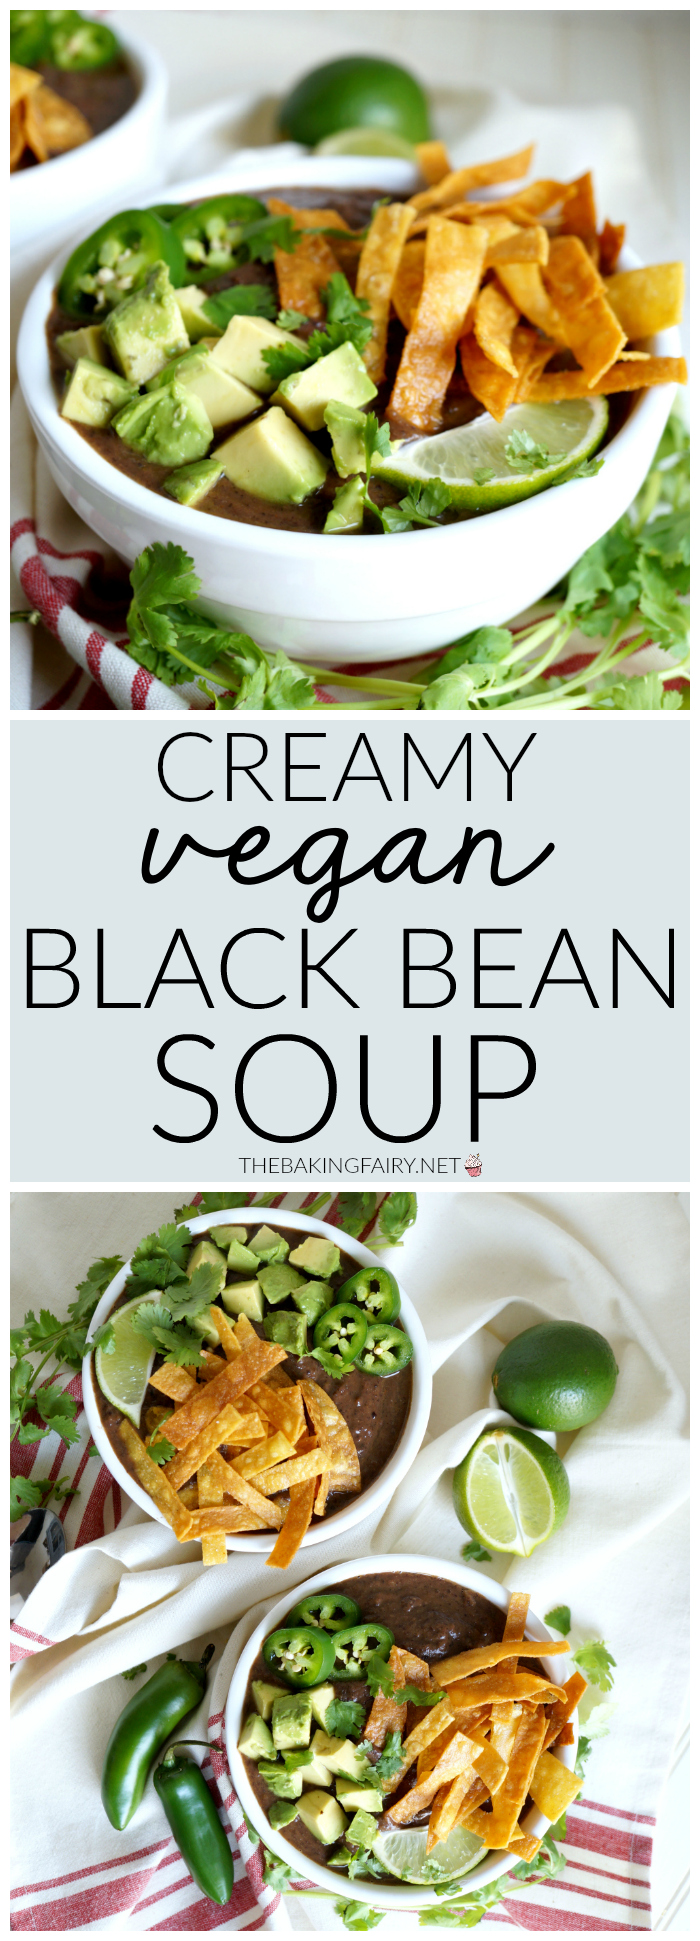 creamy vegan black bean soup | The Baking Fairy